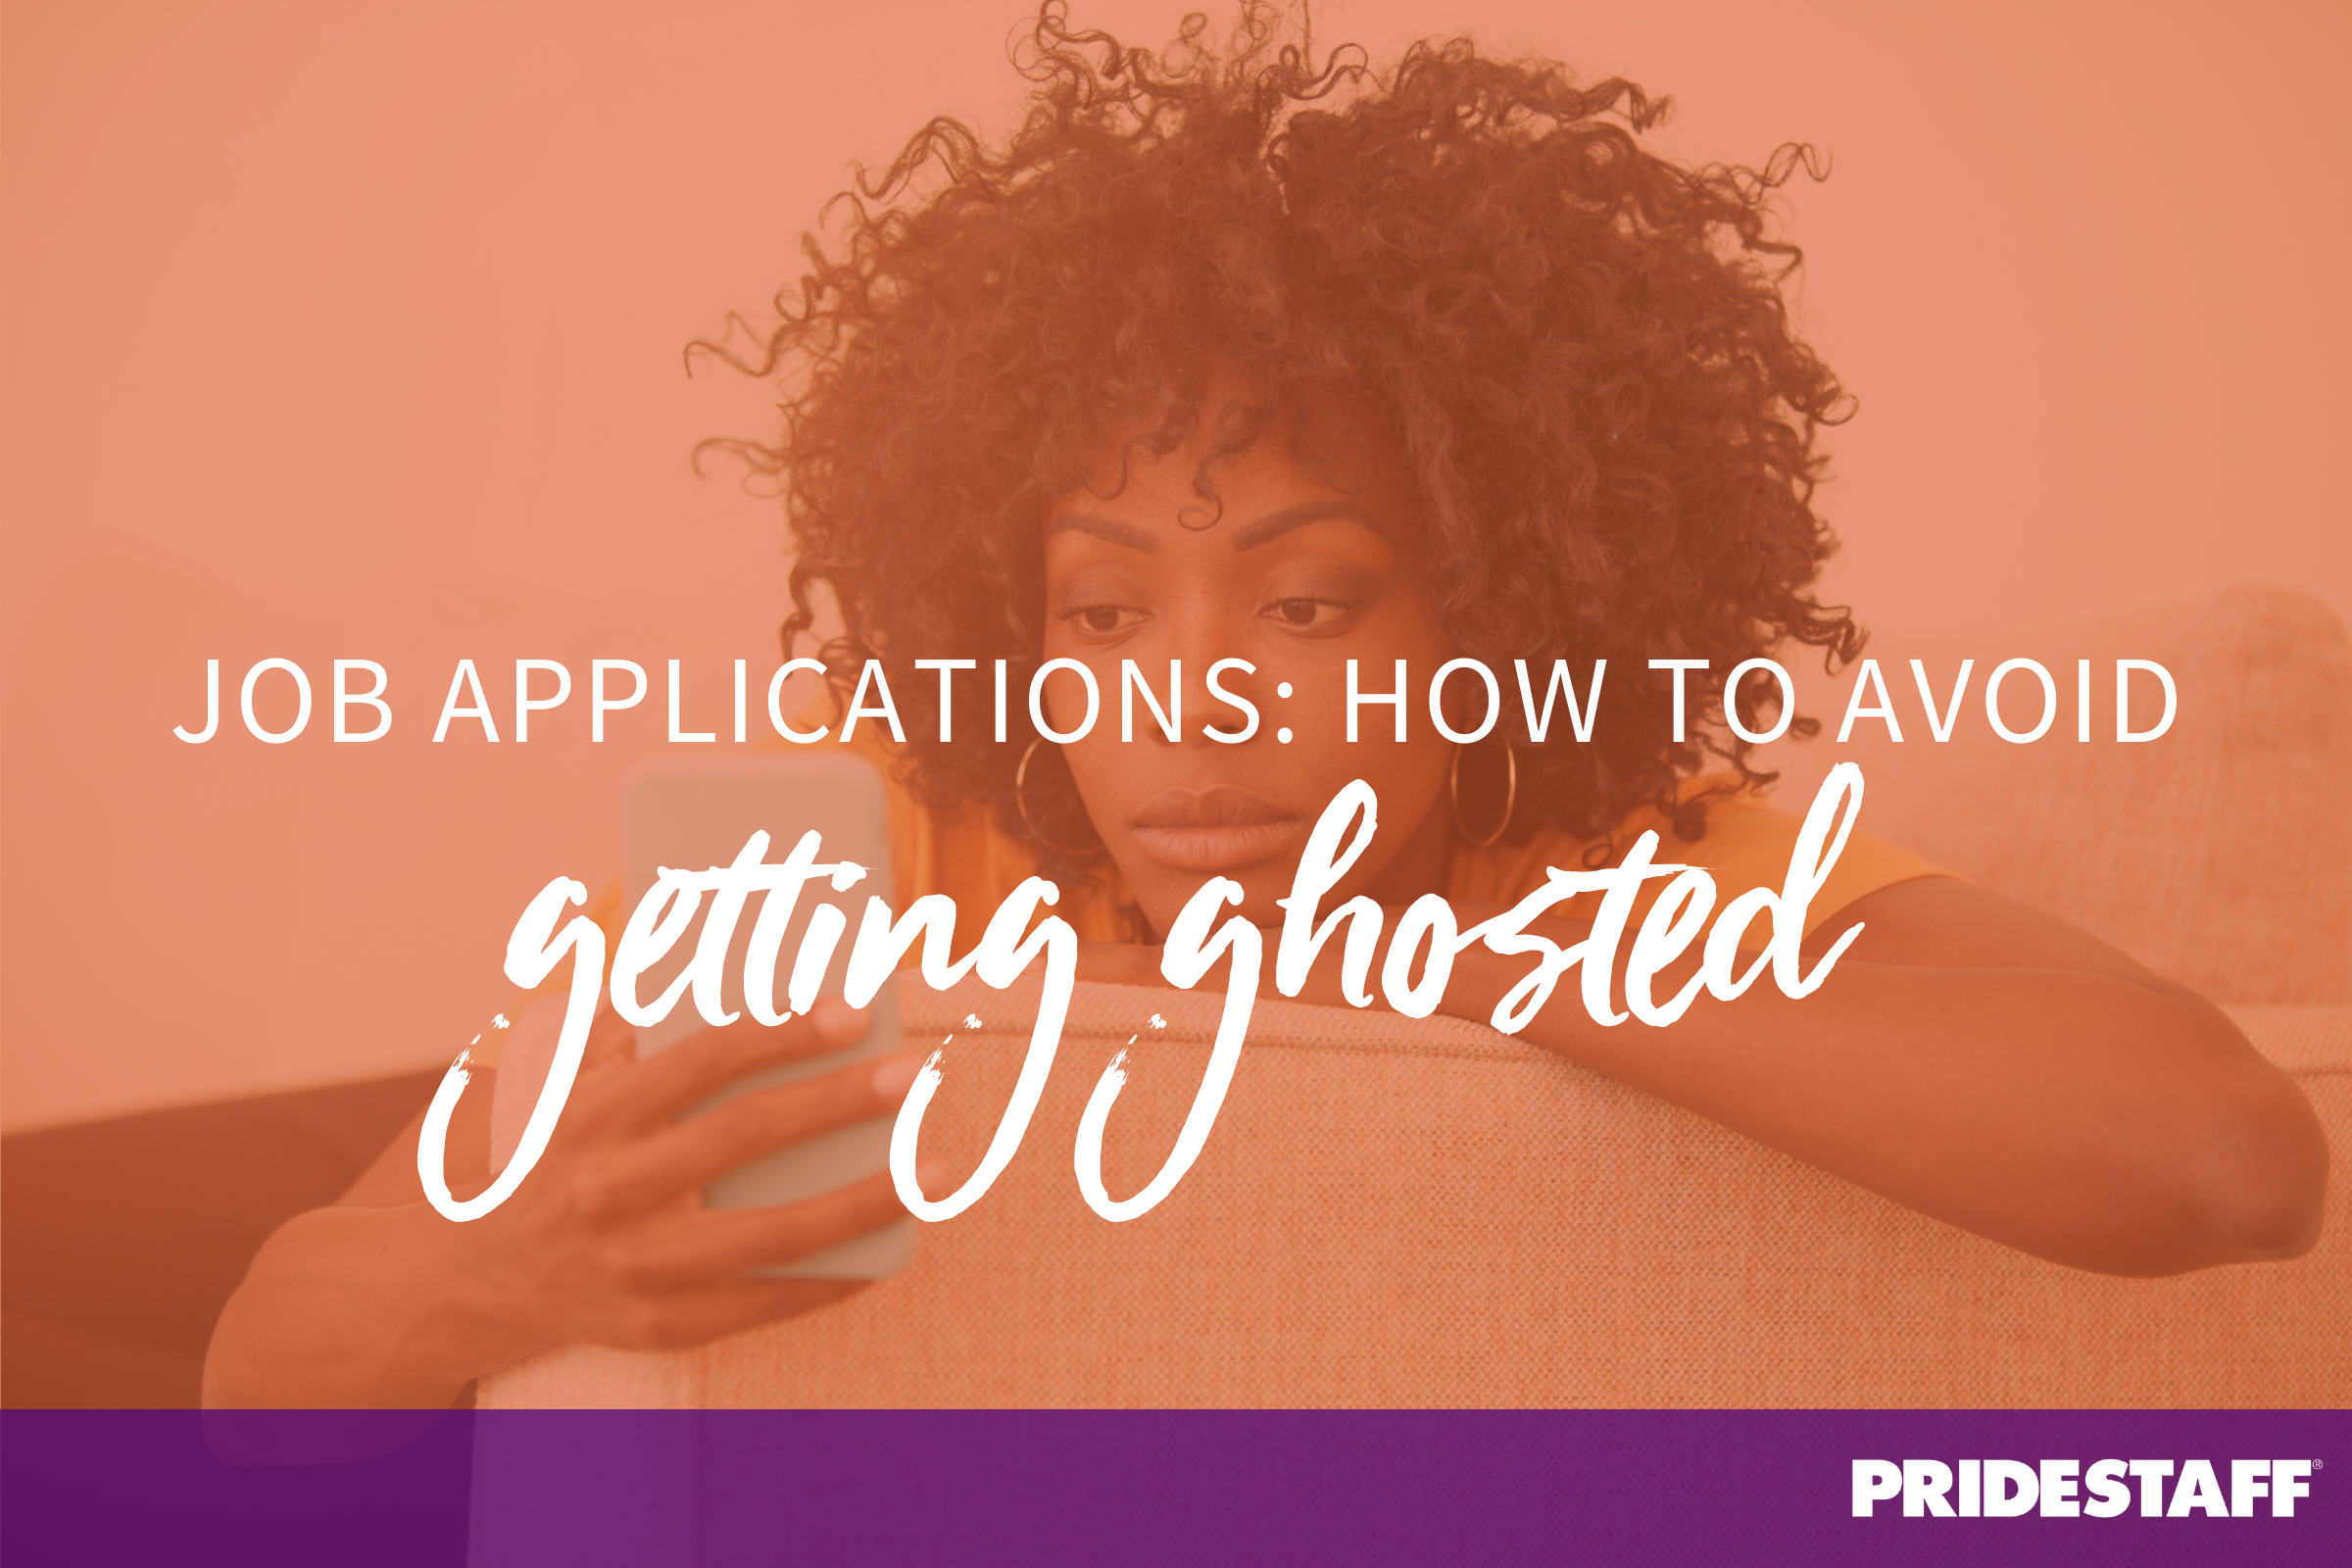 avoid getting ghosted